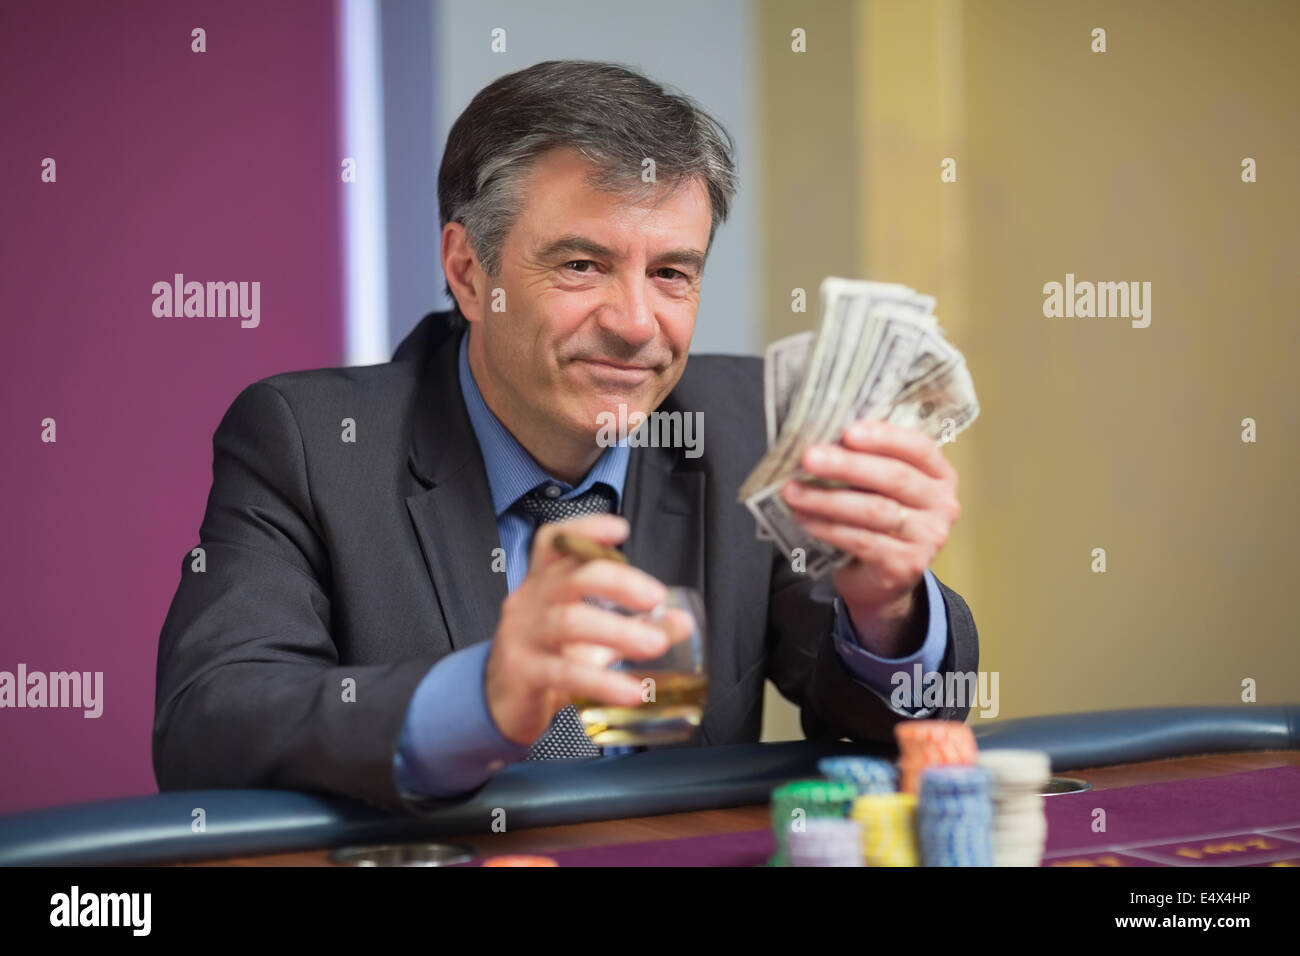 Man holding money smiling at roulette table - Stock Image